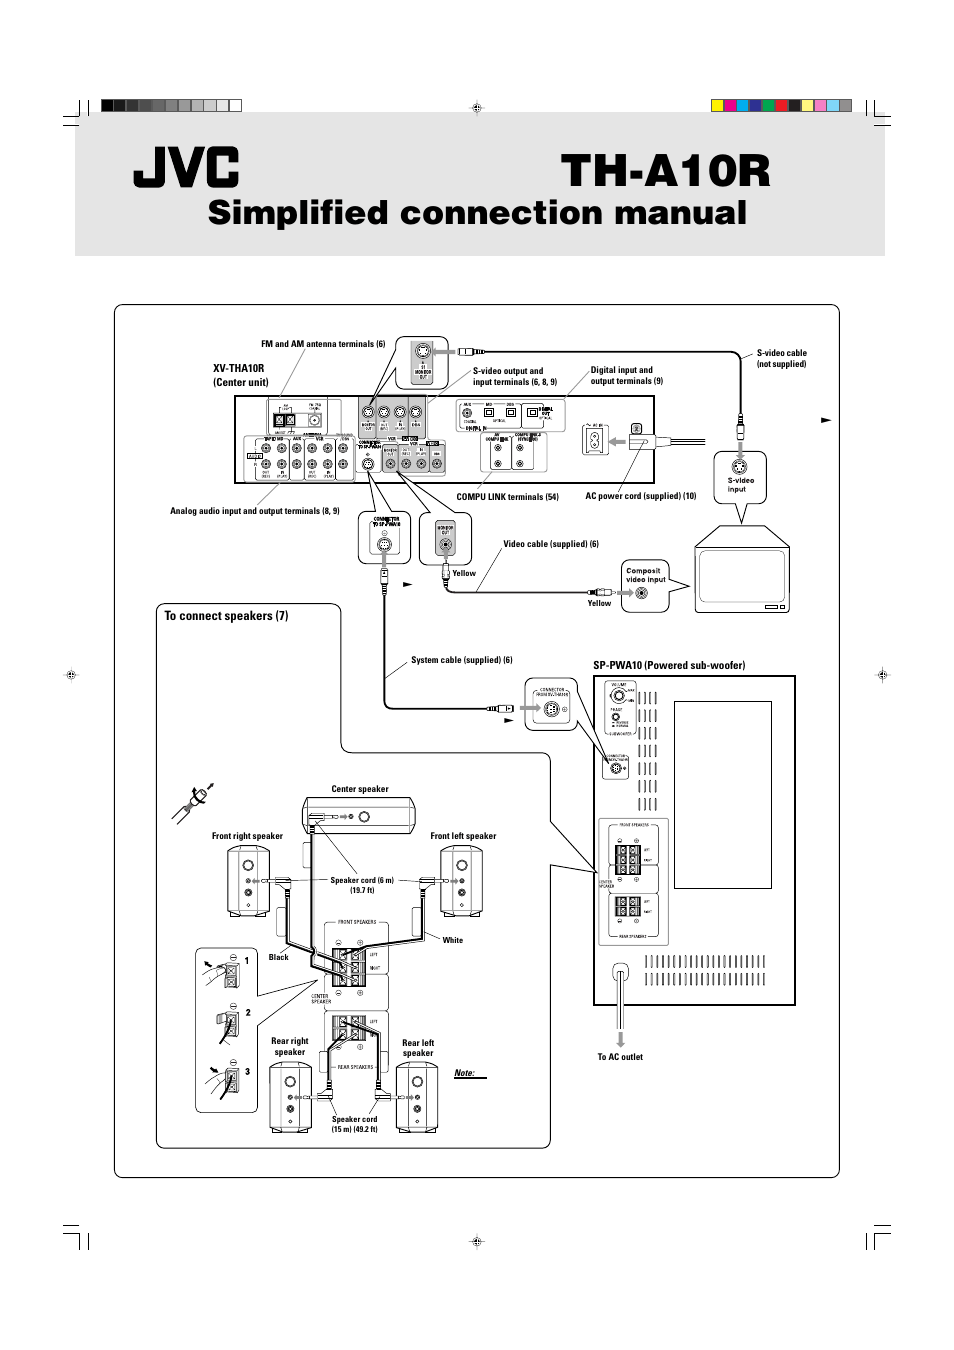 Simplified connection manual, Th-a10r, Dvd digital cinema